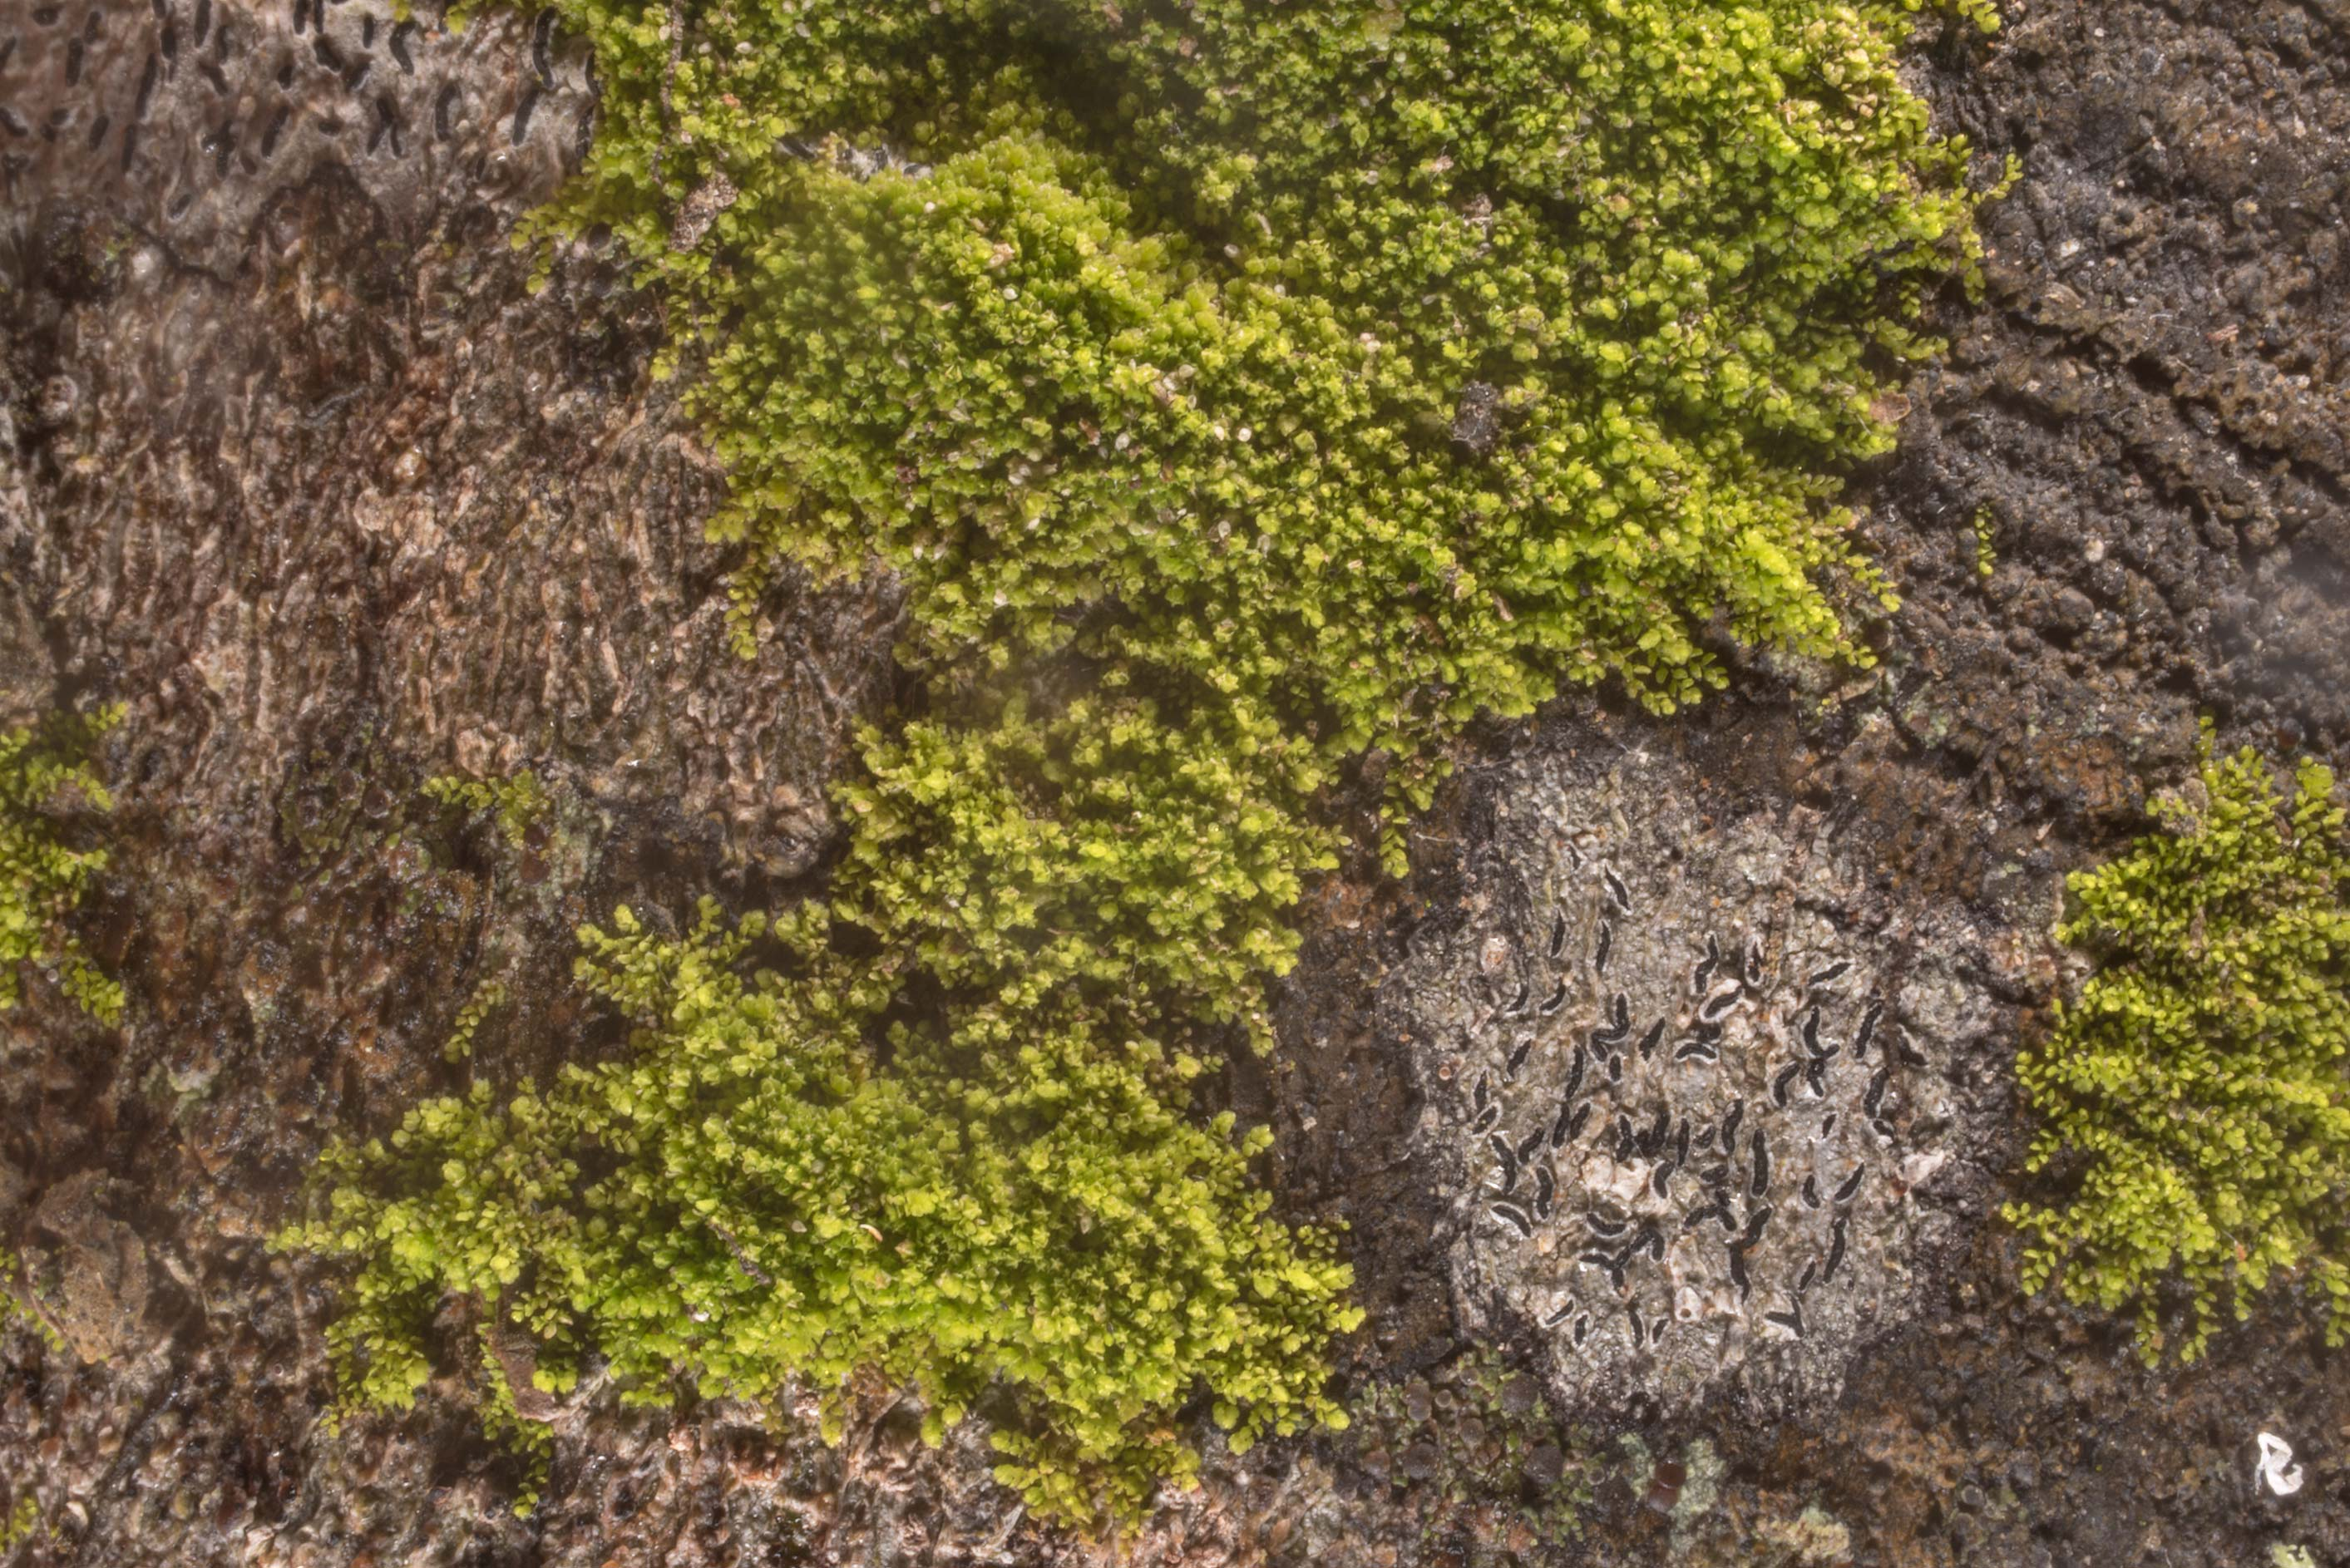 Tiny green liverwort and Graphis lichen on bark...State Historic Site. Washington, Texas